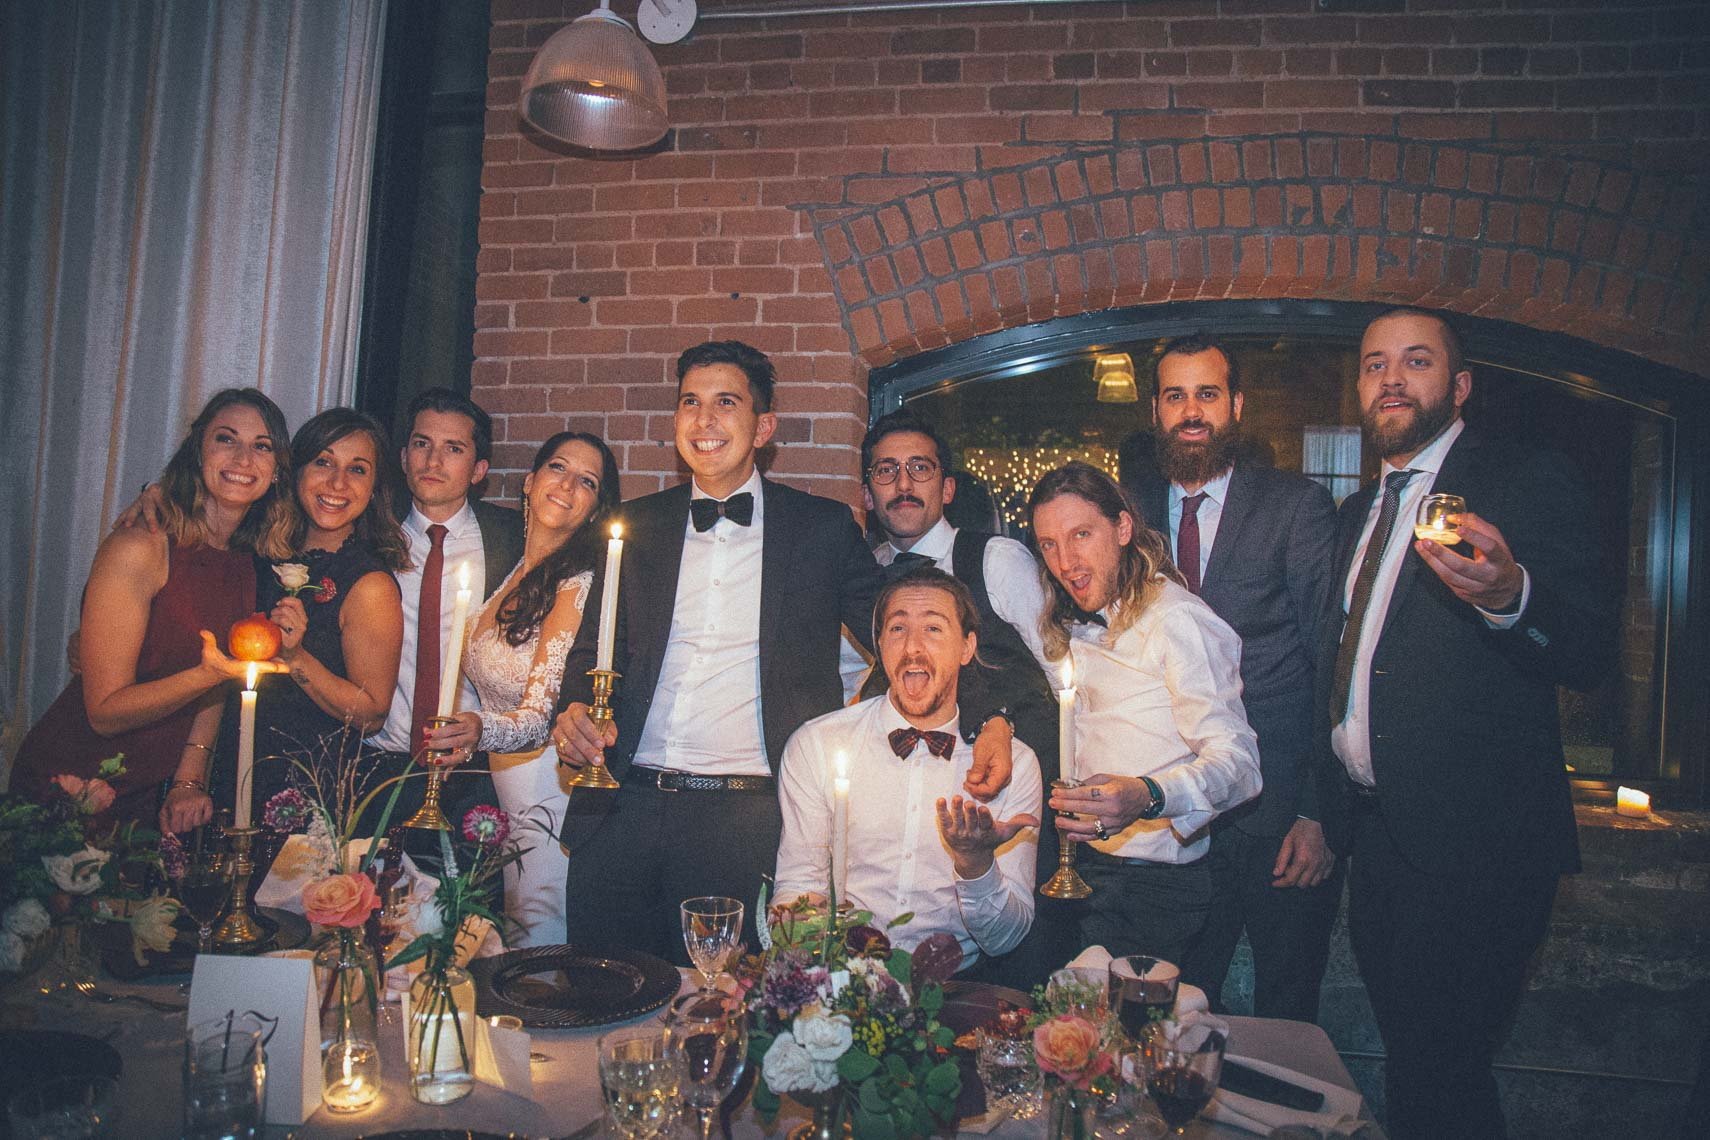 Wedding Reception Photographer Vancouver British Columbia | Magnolia Studio Photography